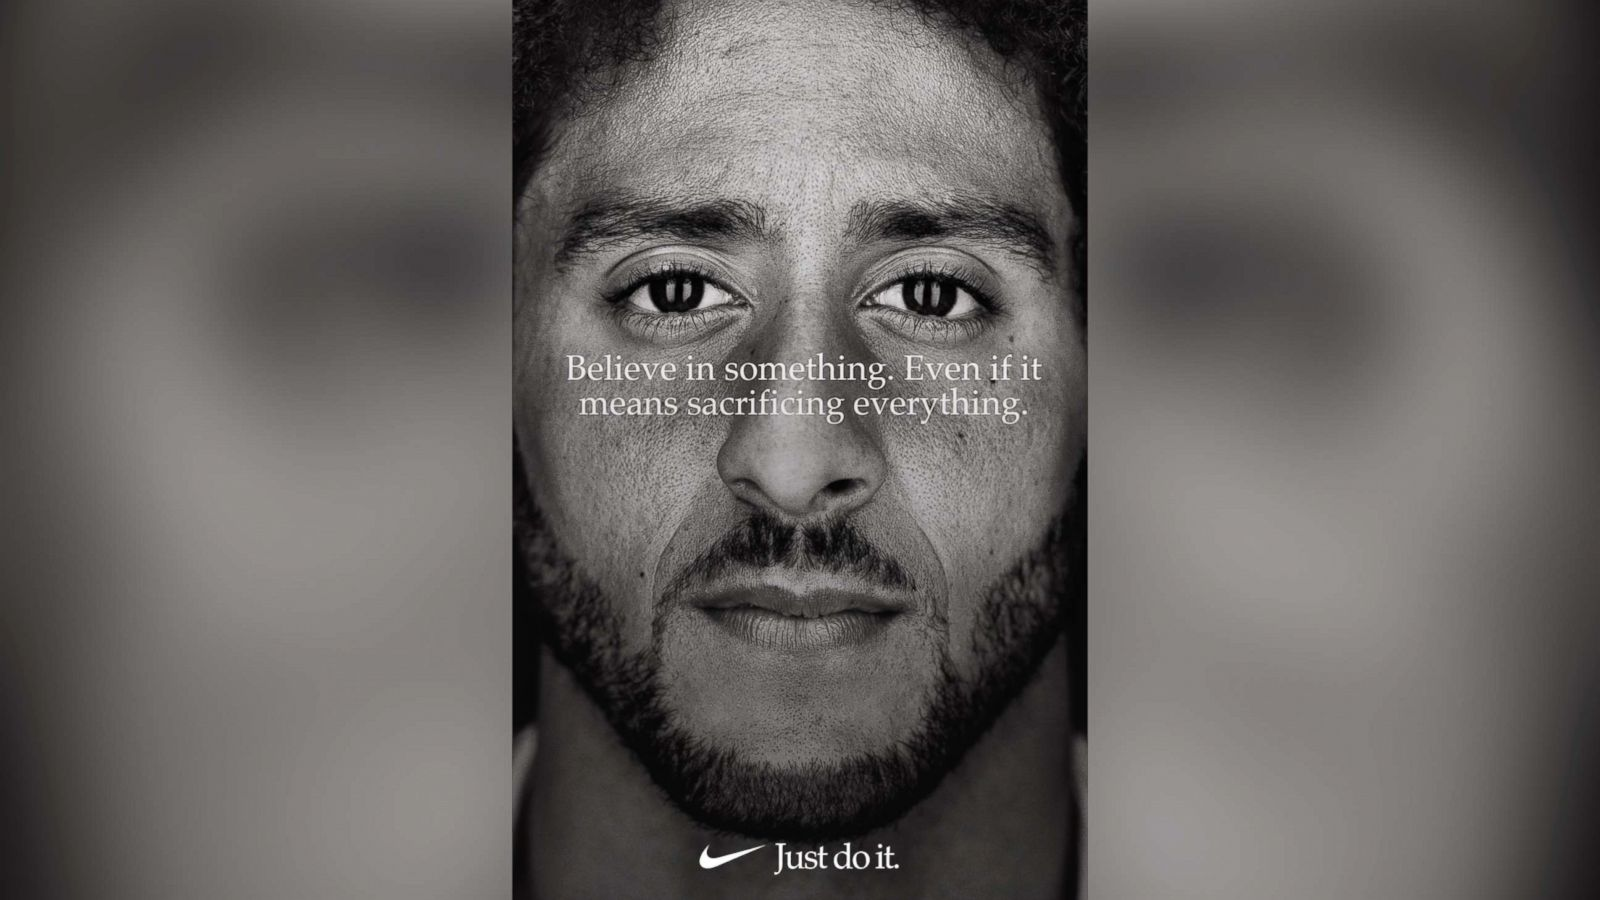 Nike S Colin Kaepernick Just Do It Campaign Is Controversial But On Brand Experts Abc News